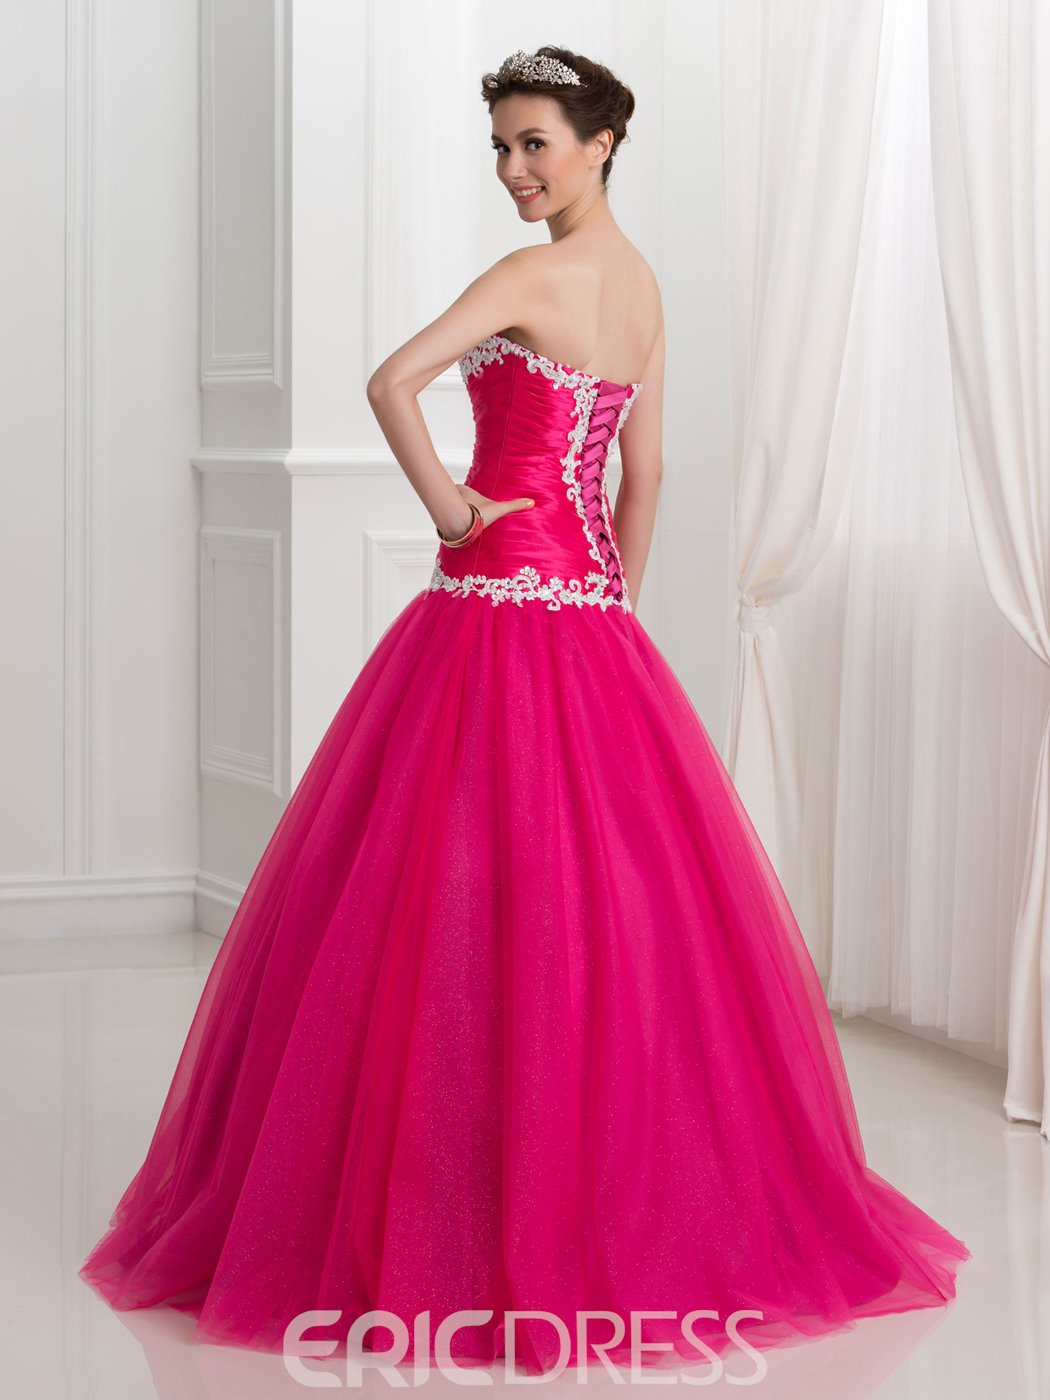 Ericdress Sweetheart Appliques Beading Pleats Quinceanera Dress